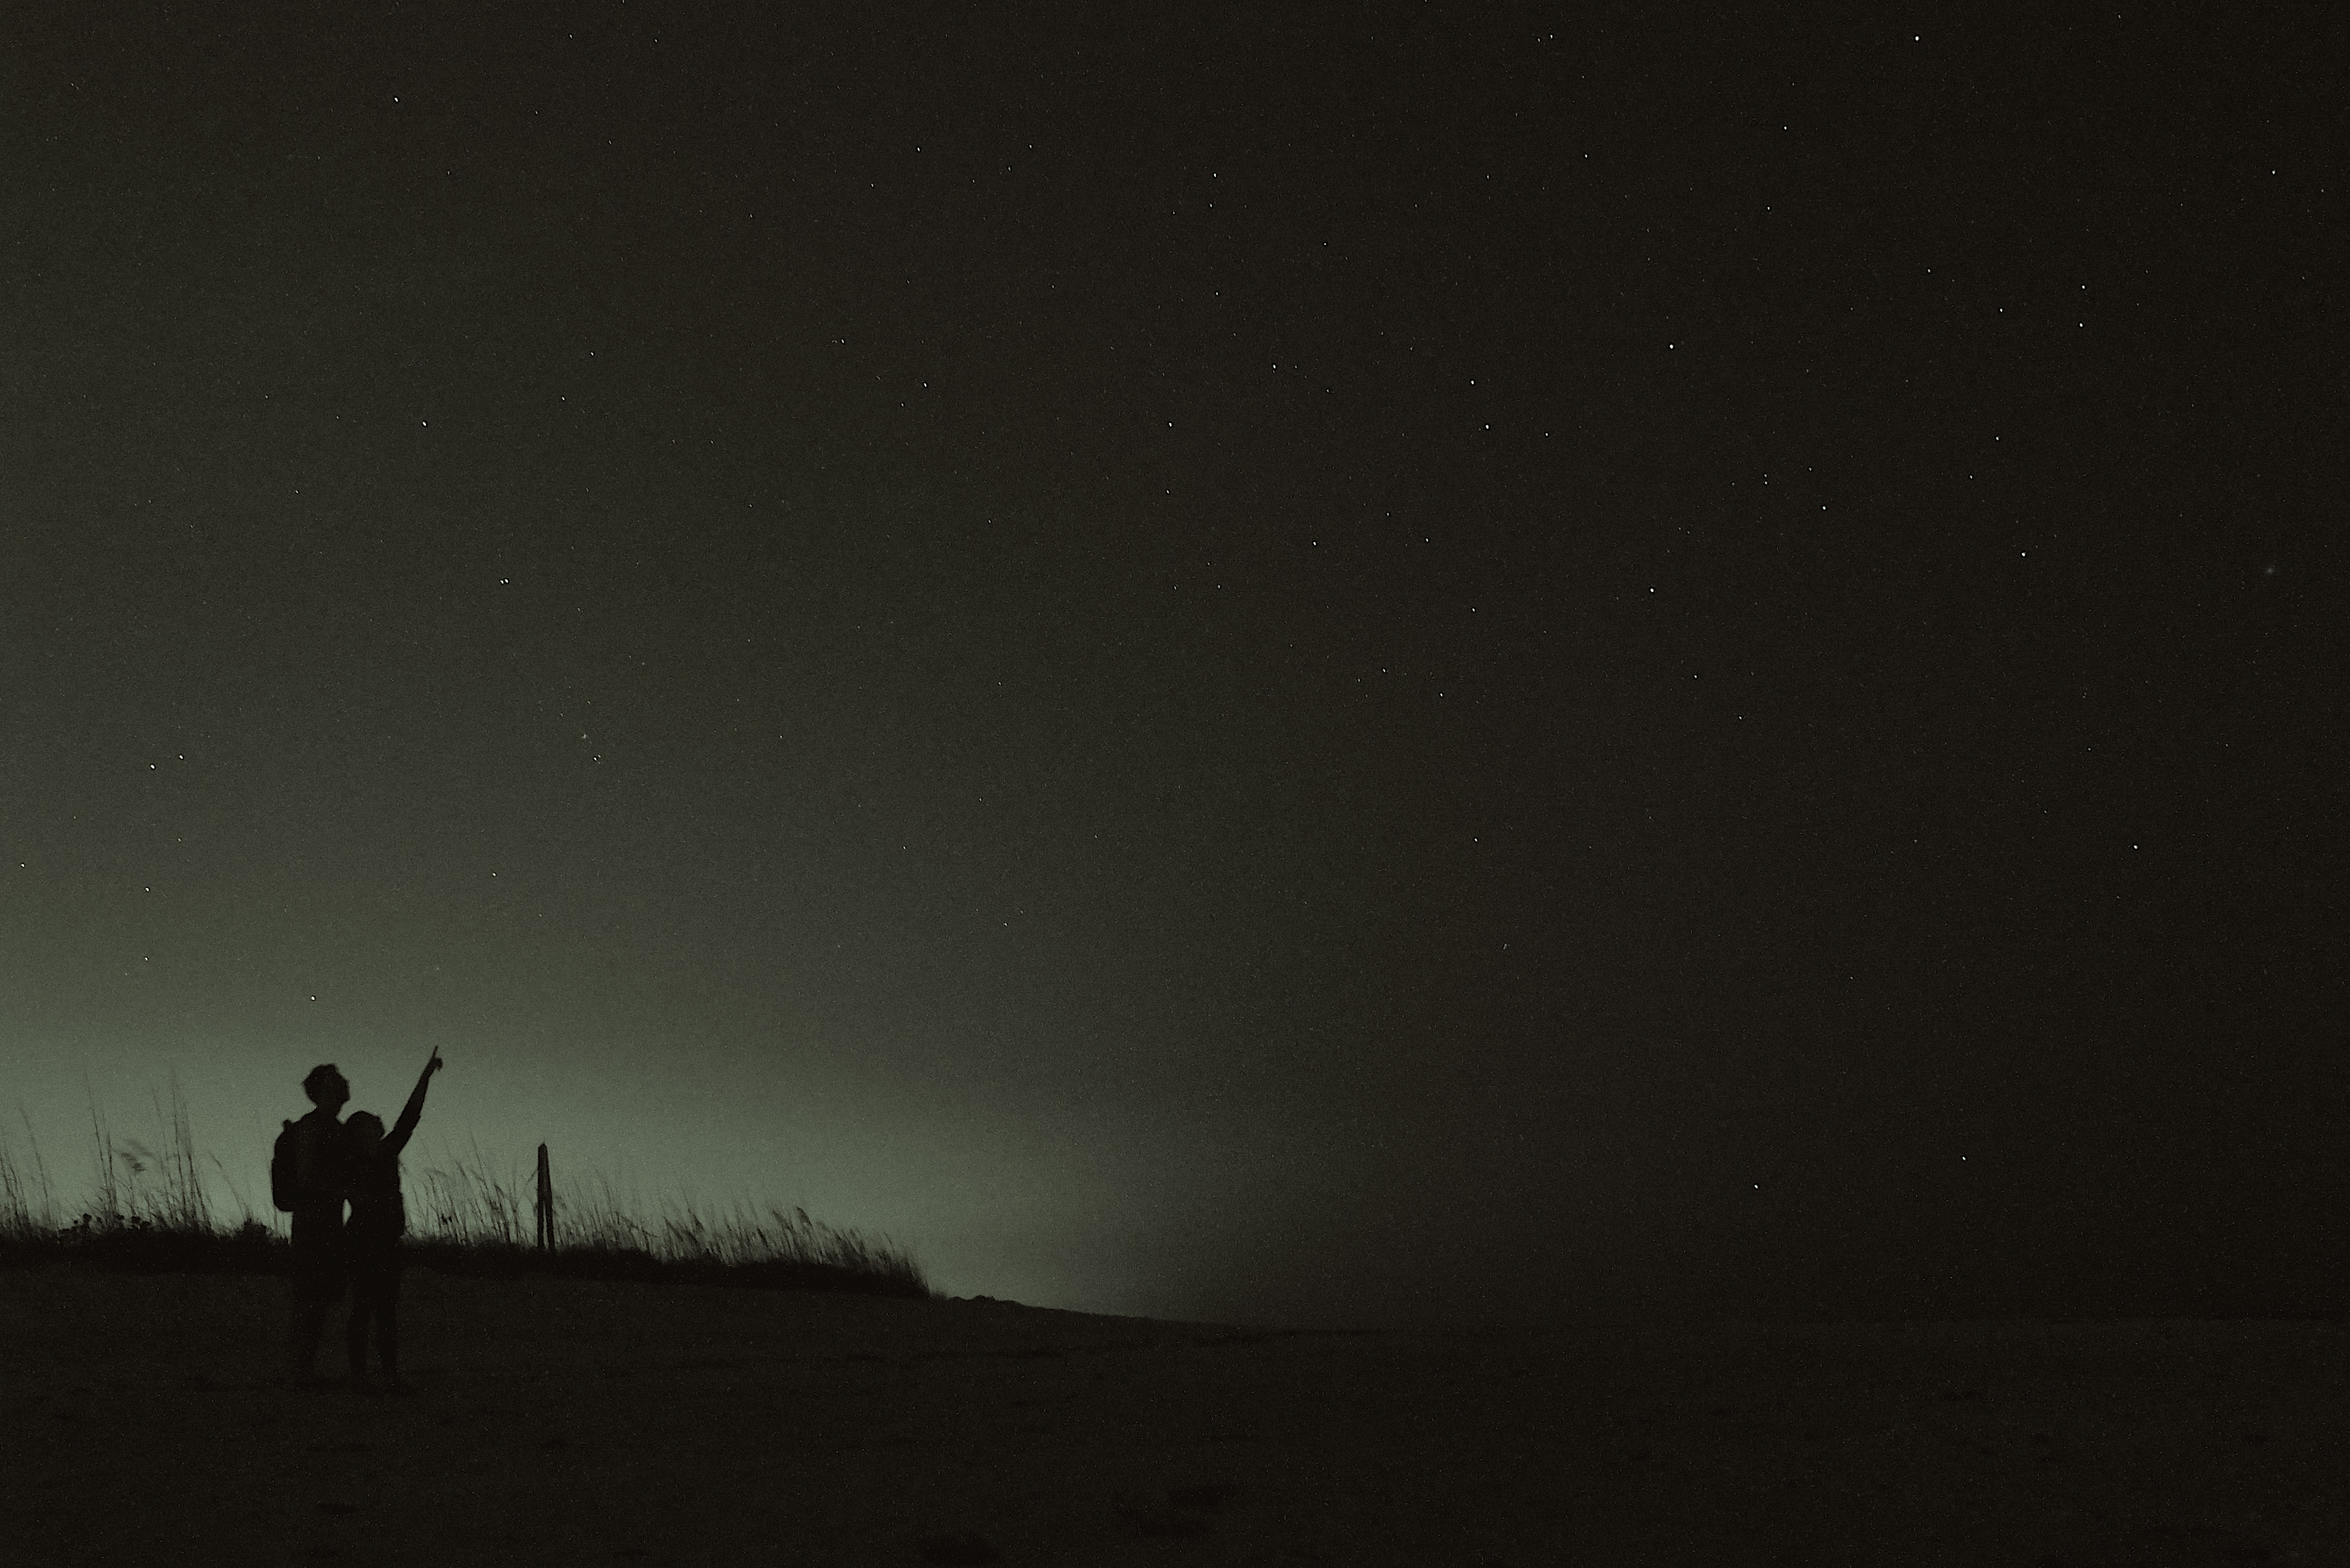 Couple looking up towards black night sky, one with arms outstretched